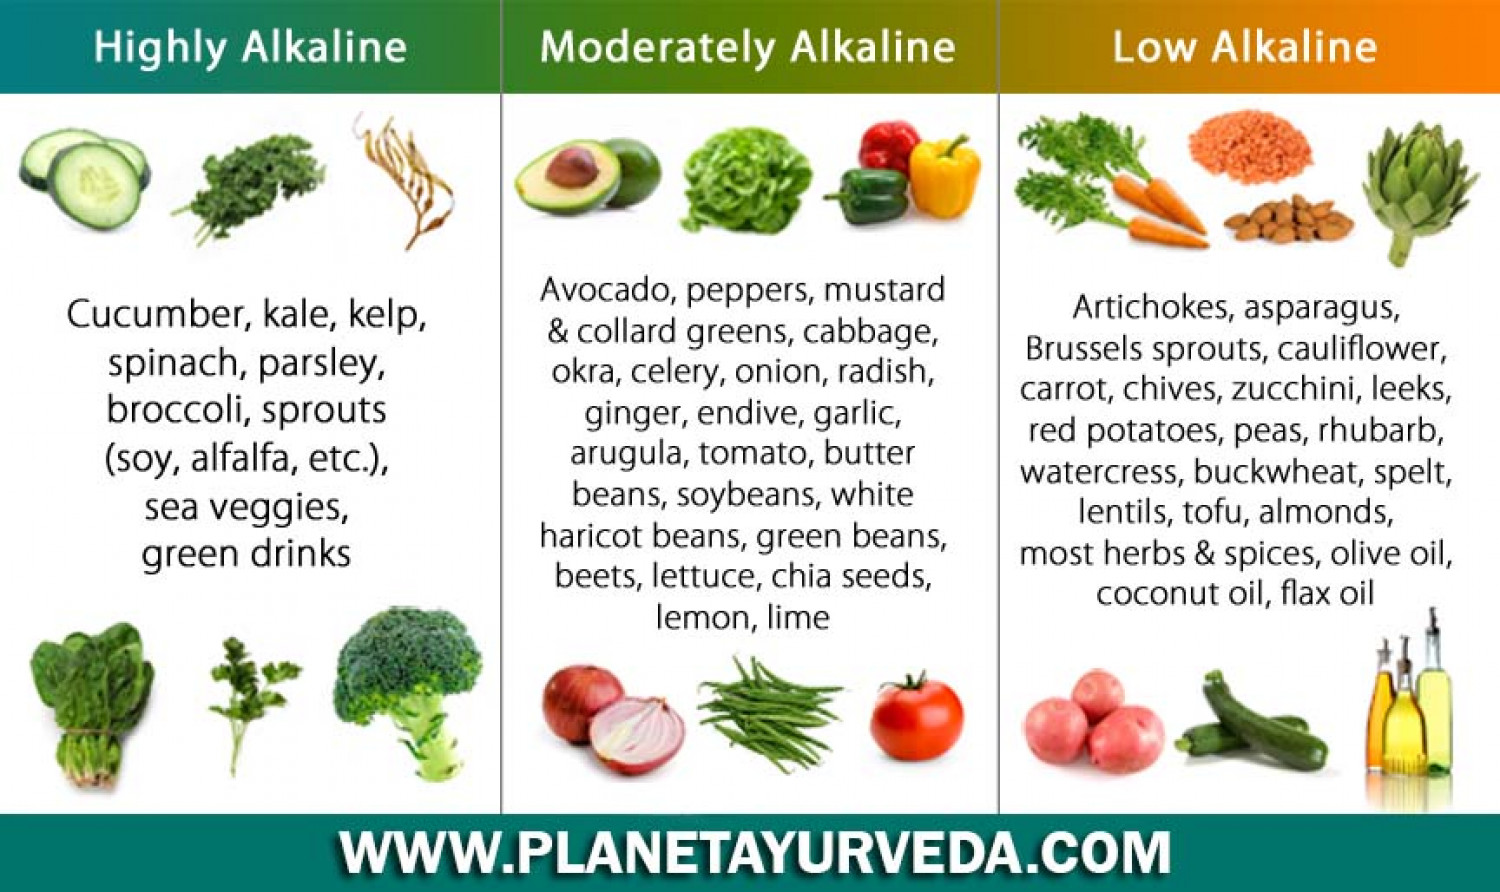 alkaline diet plan to reduce acidity reflux - Planet Ayurveda Infographic